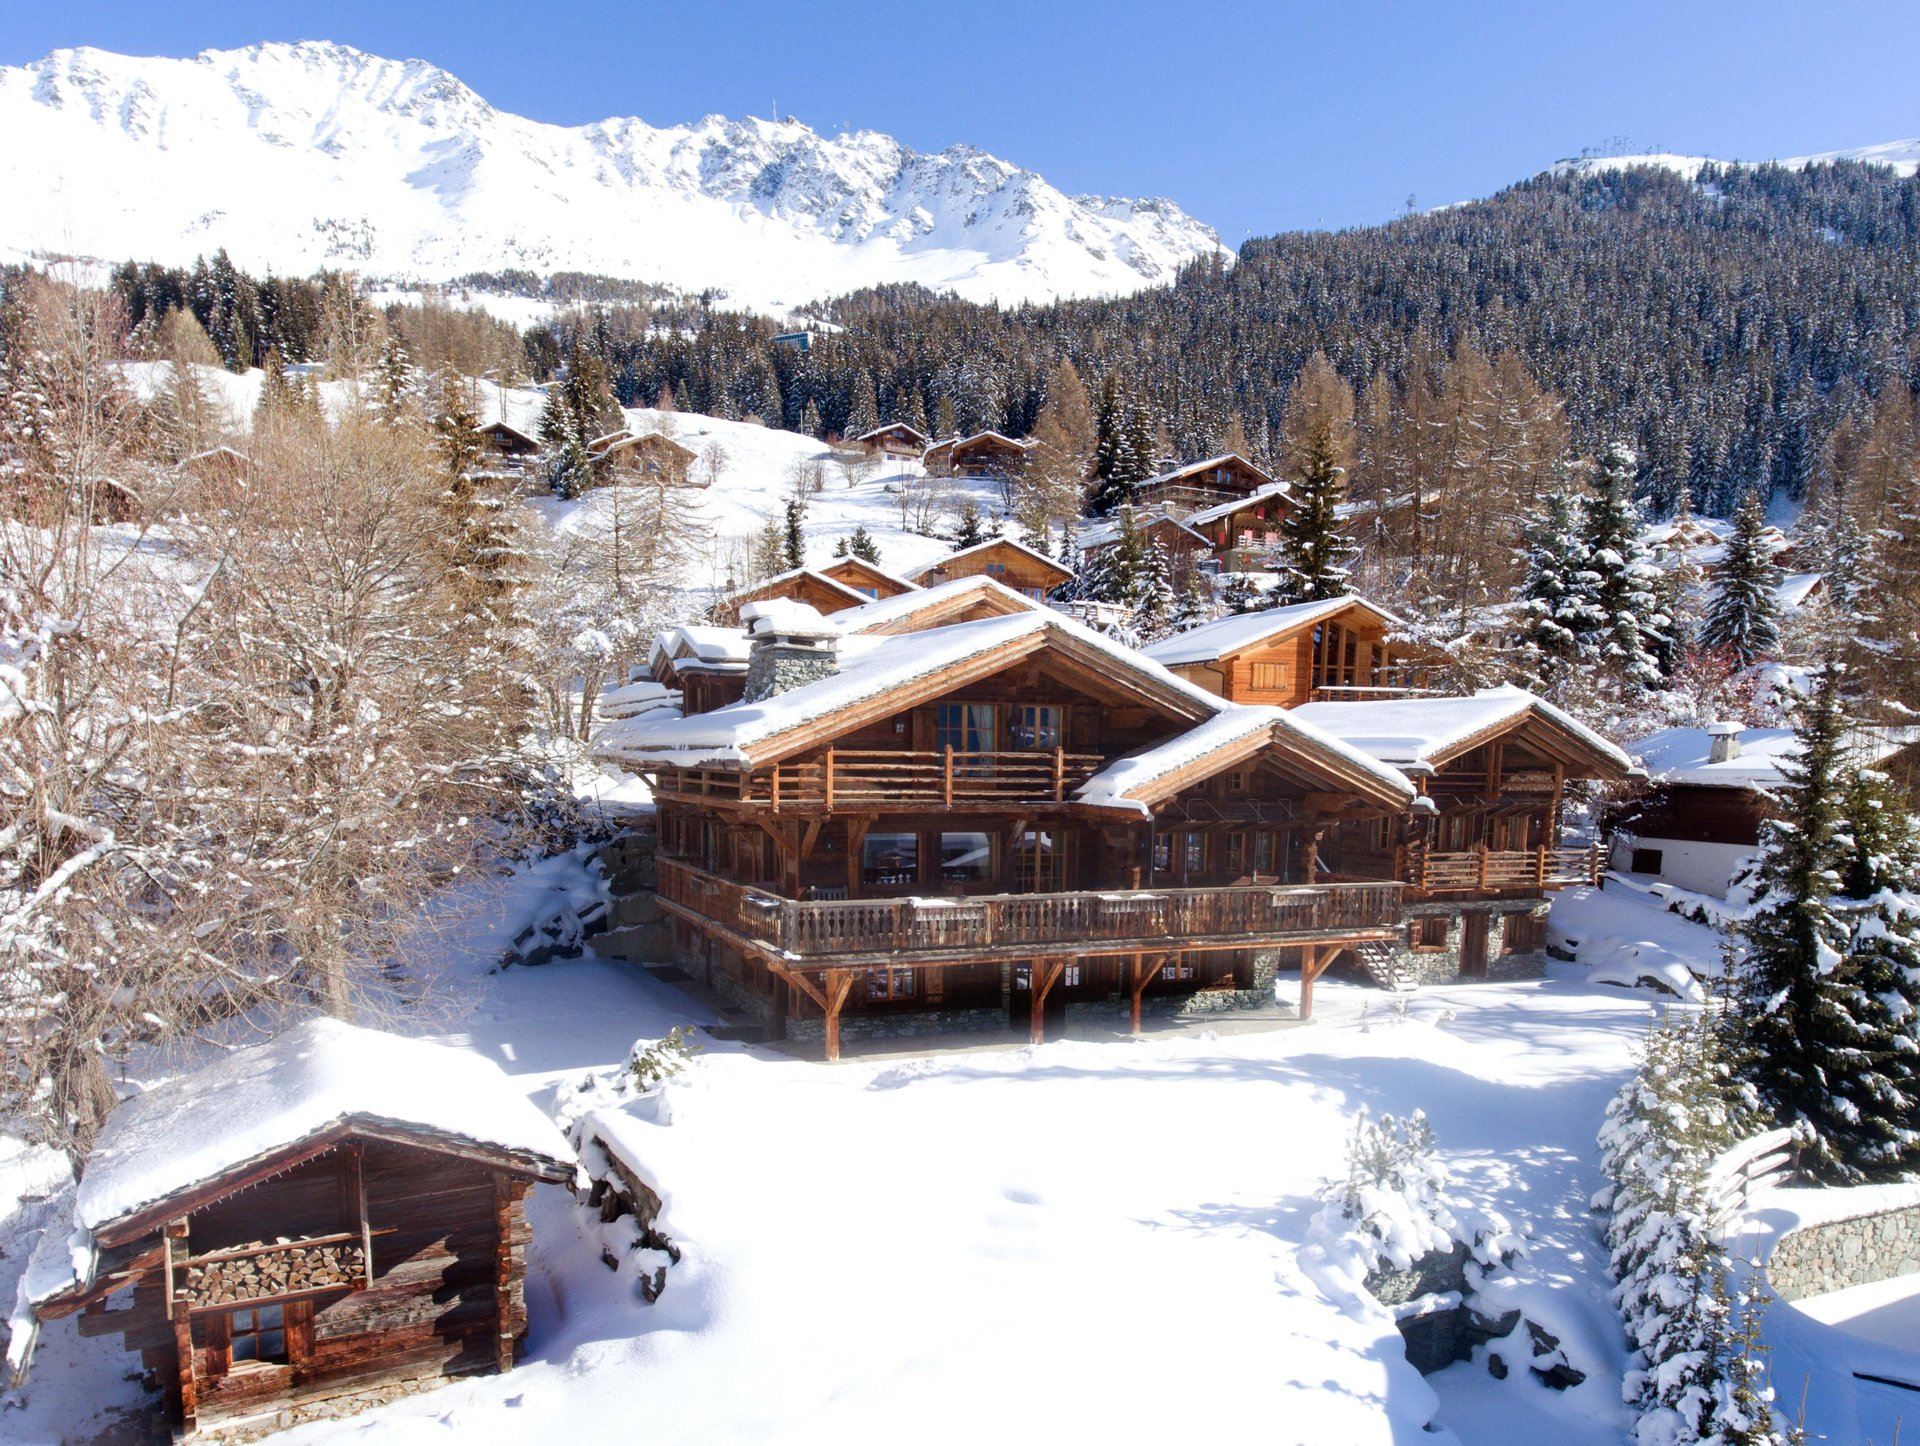 Verbier St-Bernard accommodation chalets for sale in Verbier St-Bernard apartments to buy in Verbier St-Bernard holiday homes to buy in Verbier St-Bernard